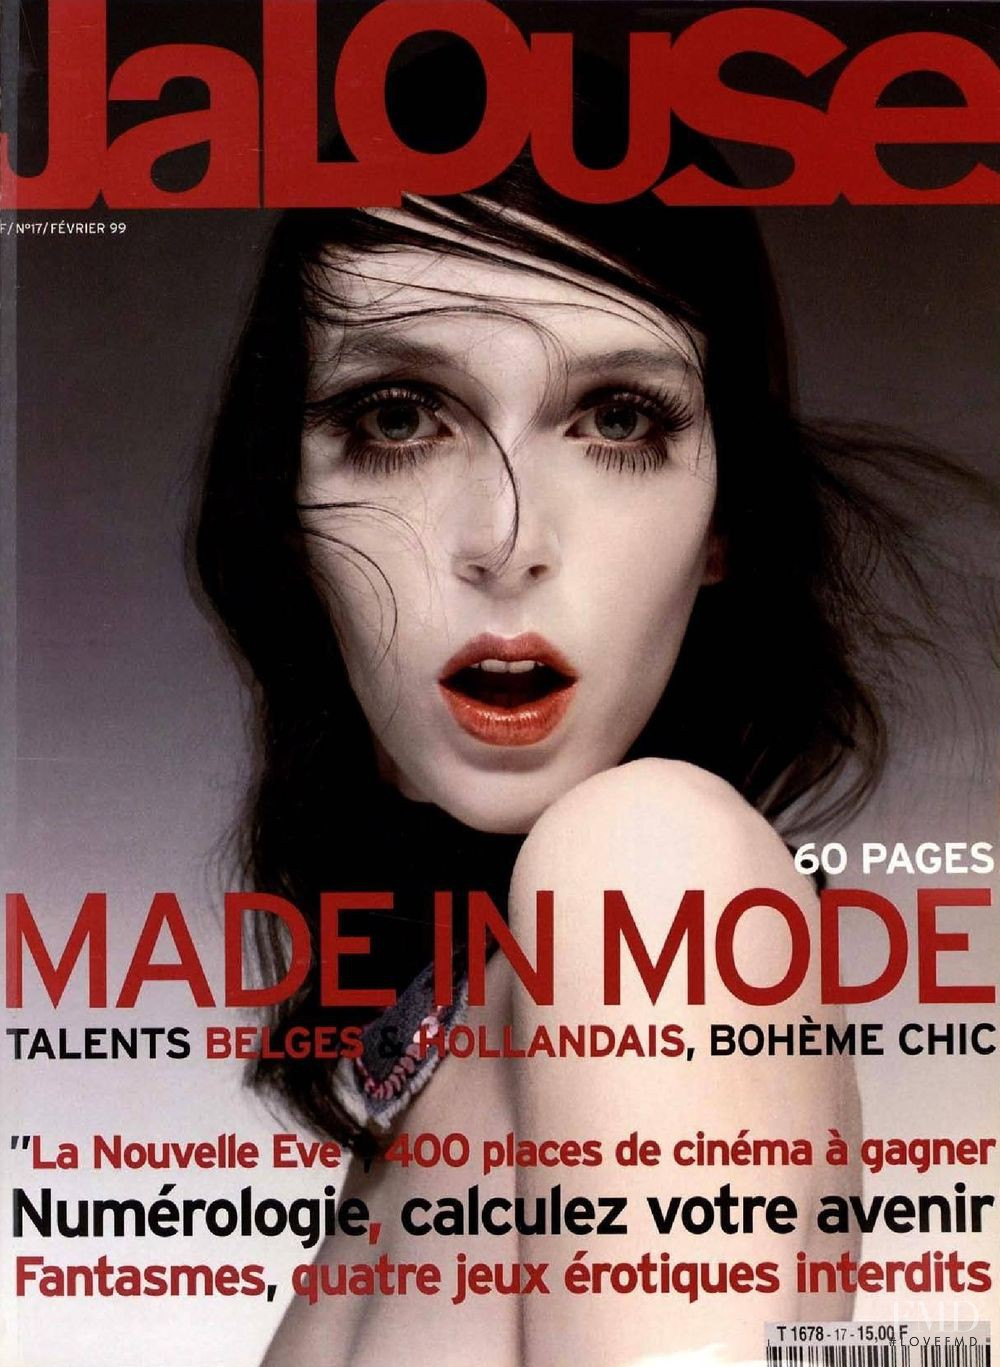 jalouse-1999-february-00-fullsize.jpg